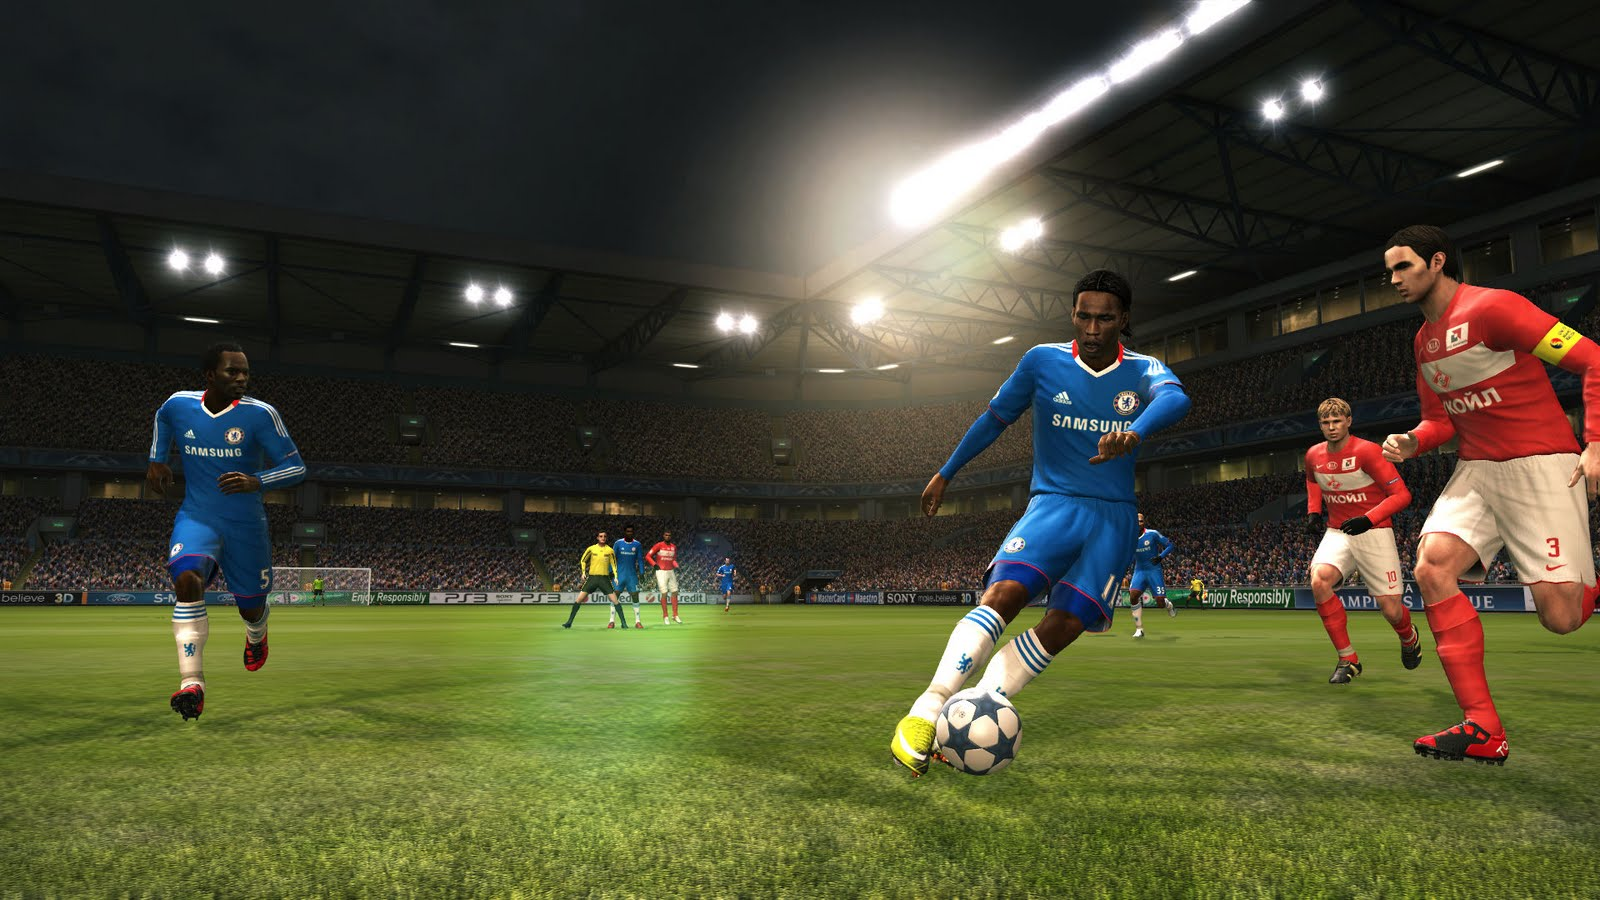 PESEDIT 2013 - PATCH 40 - PES 2013 - YouTube